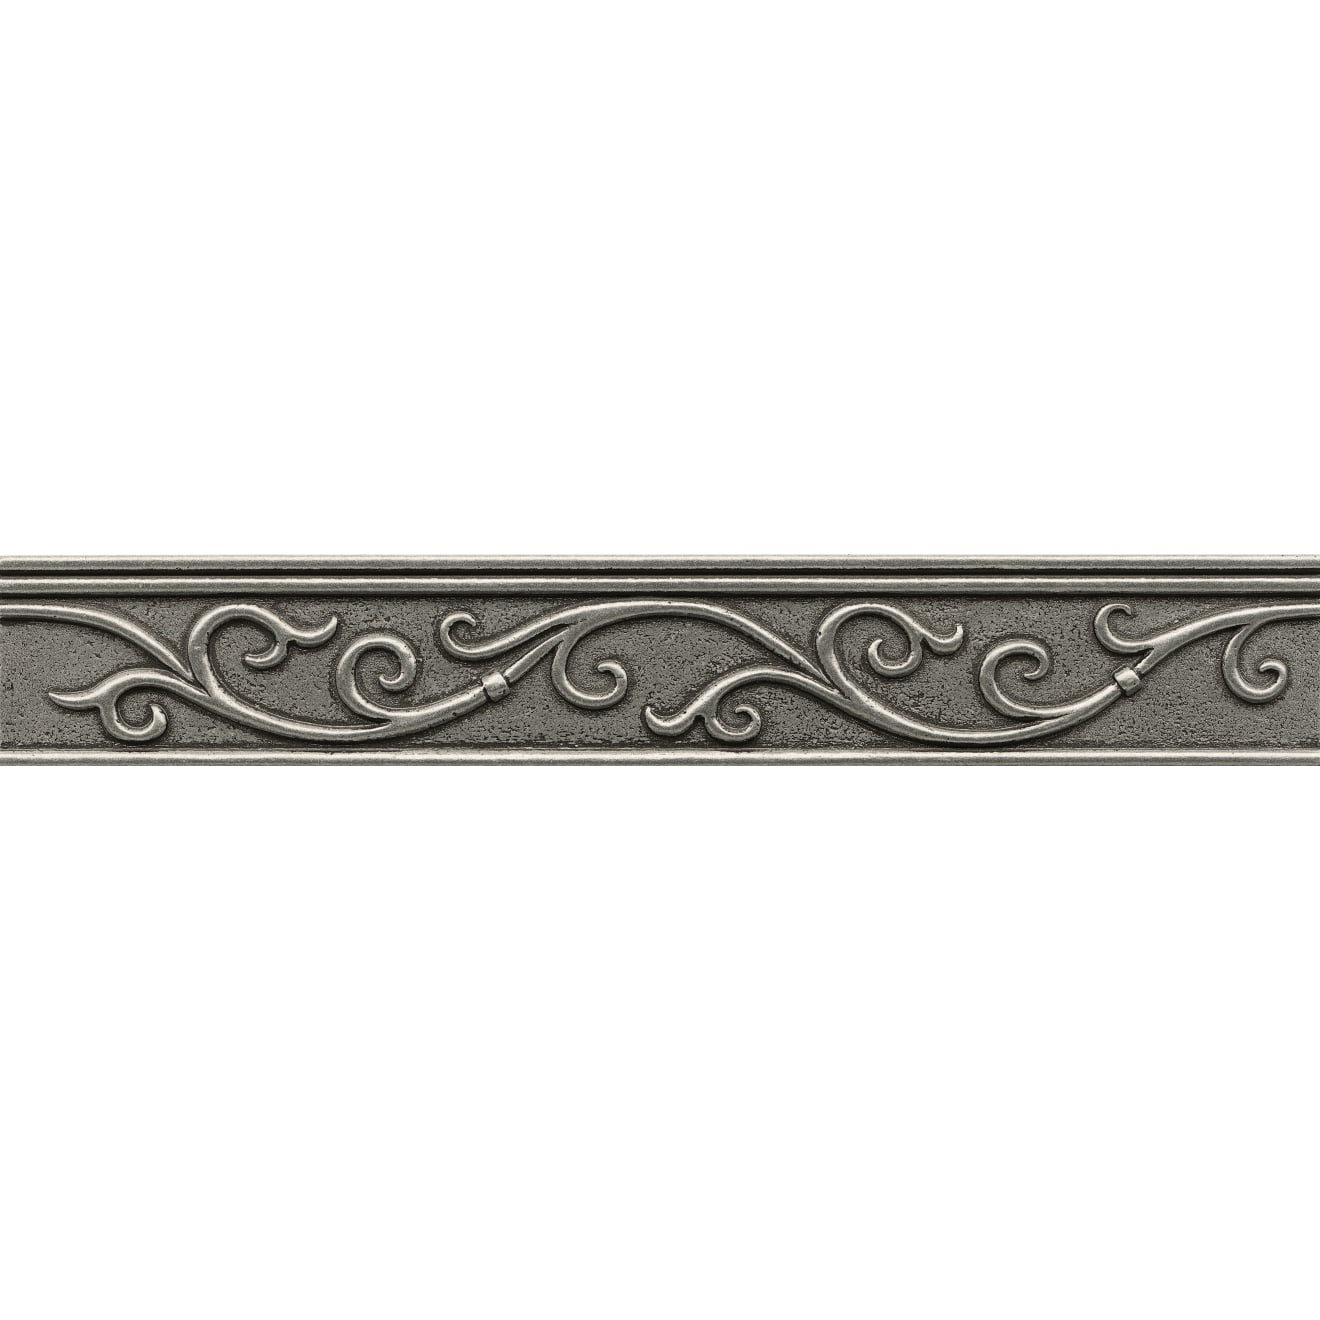 "Ambiance 2"" x 12"" Trim in Pewter"